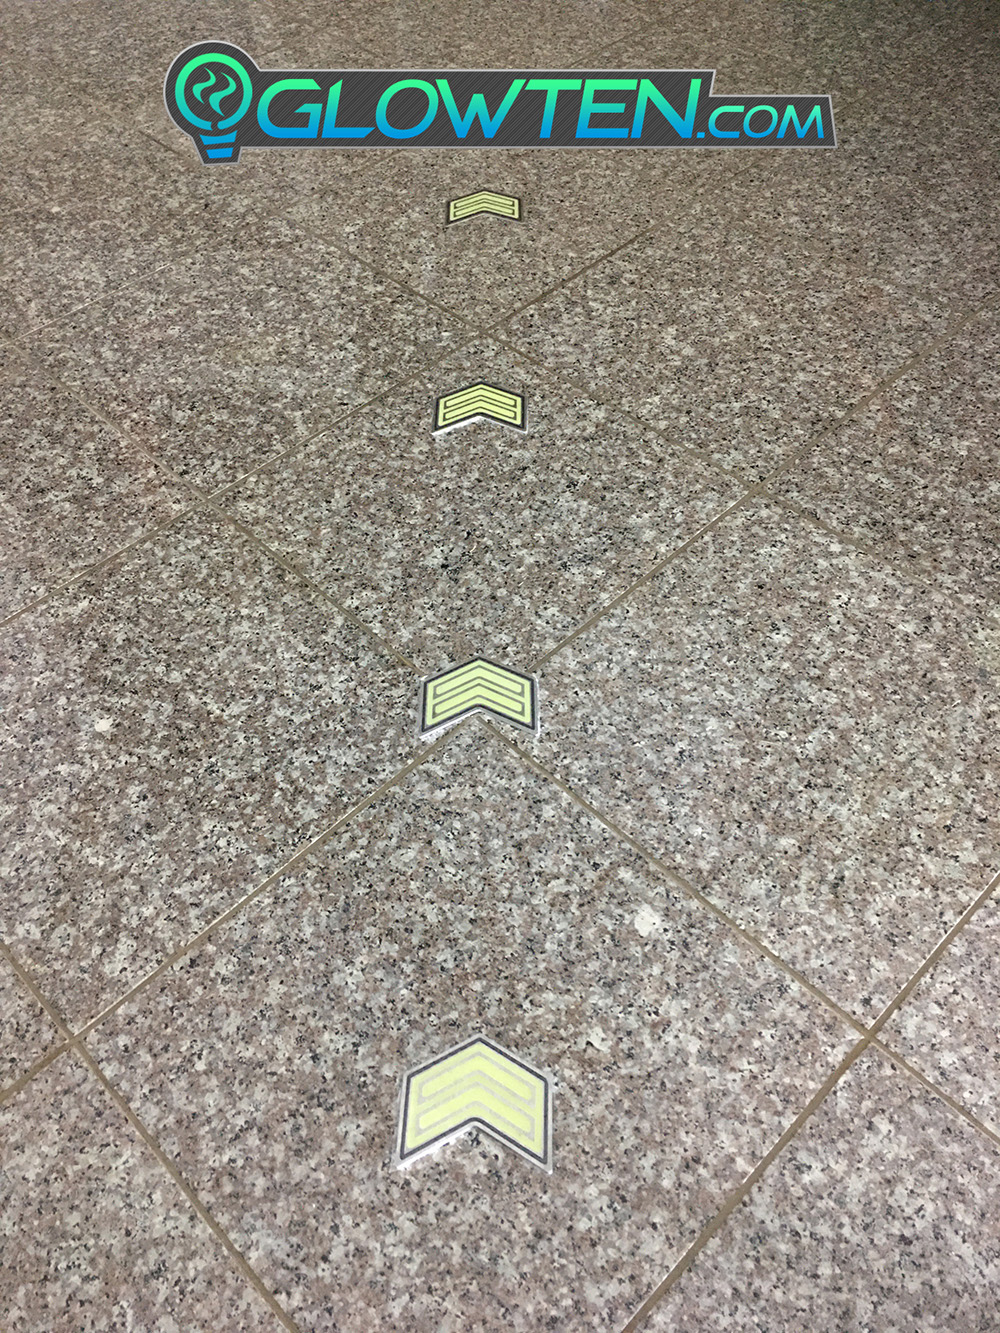 GLOWTEN.com - DOUBLE ARROWS Glow in the Dark Stairs Guide Directional Safety See Clearly At Night Metal Badge Sign Anti-slip surface picture photo cap preview pic 3